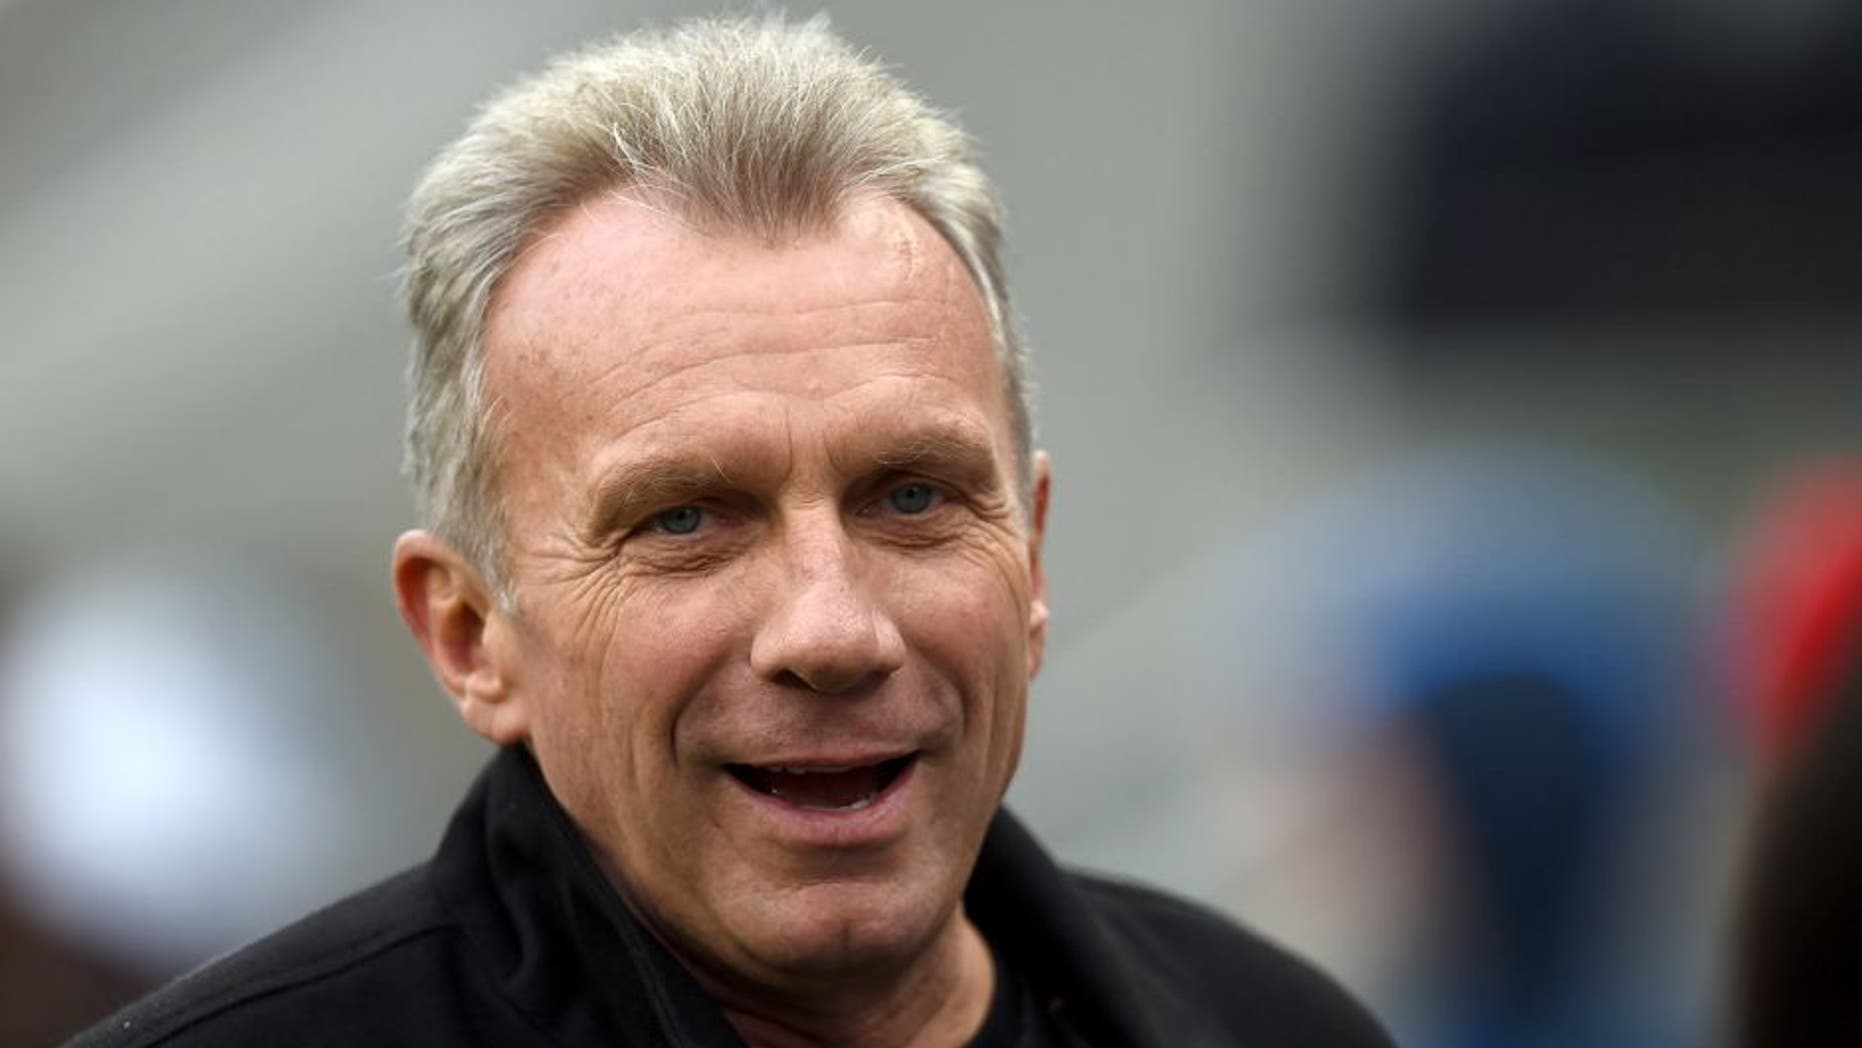 SANTA CLARA, CA - DECEMBER 20: Former San Francisco 49ers quarterback Joe Montana looks on from the sidelines during the NFL game between the San Francisco 49ers and the Cincinnati Bengals at Levi's Stadium on December 20, 2015 in Santa Clara, California. (Photo by Thearon W. Henderson/Getty Images)